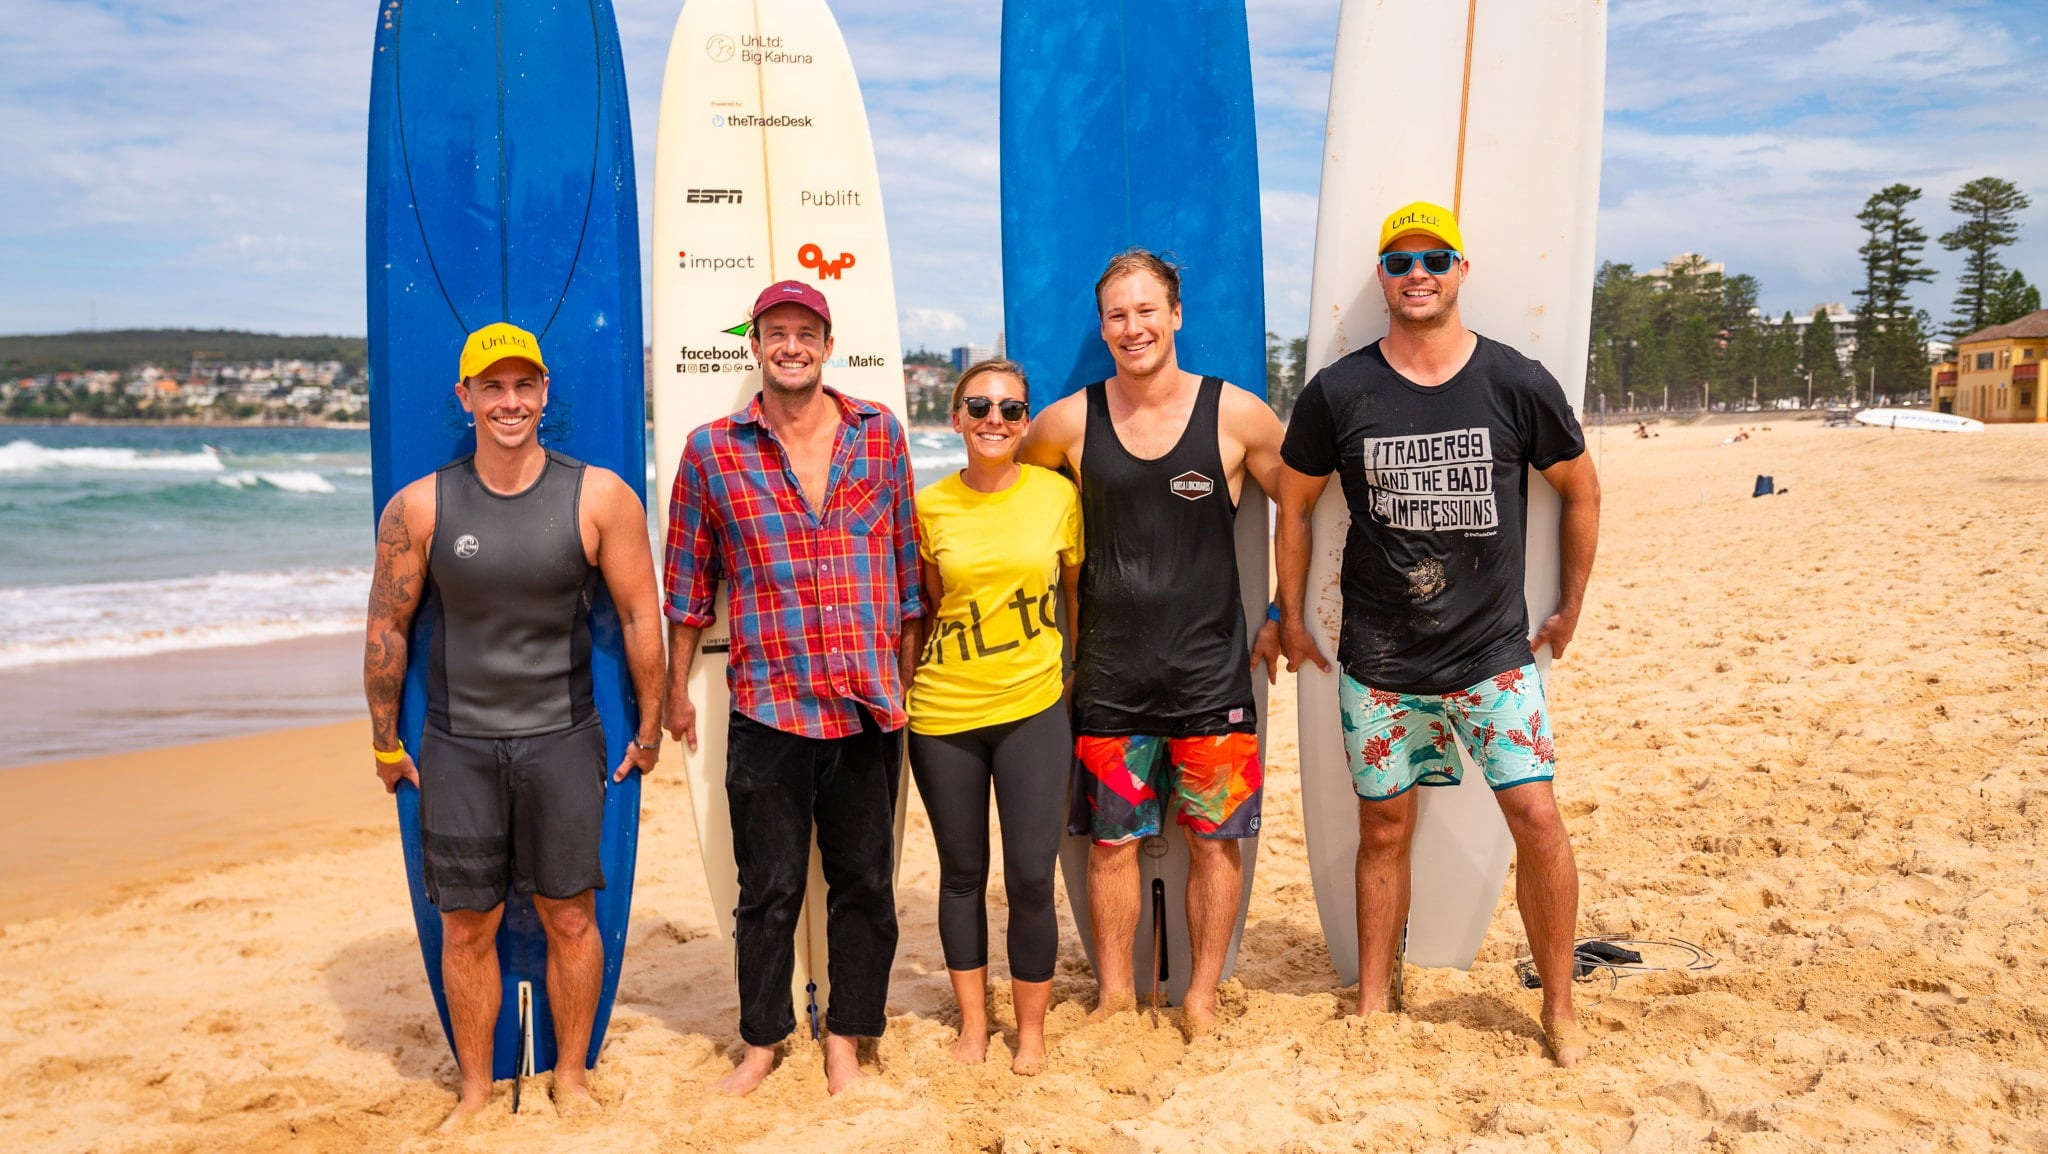 Surfing at The Big Kahuna surf charity event with UnLtd